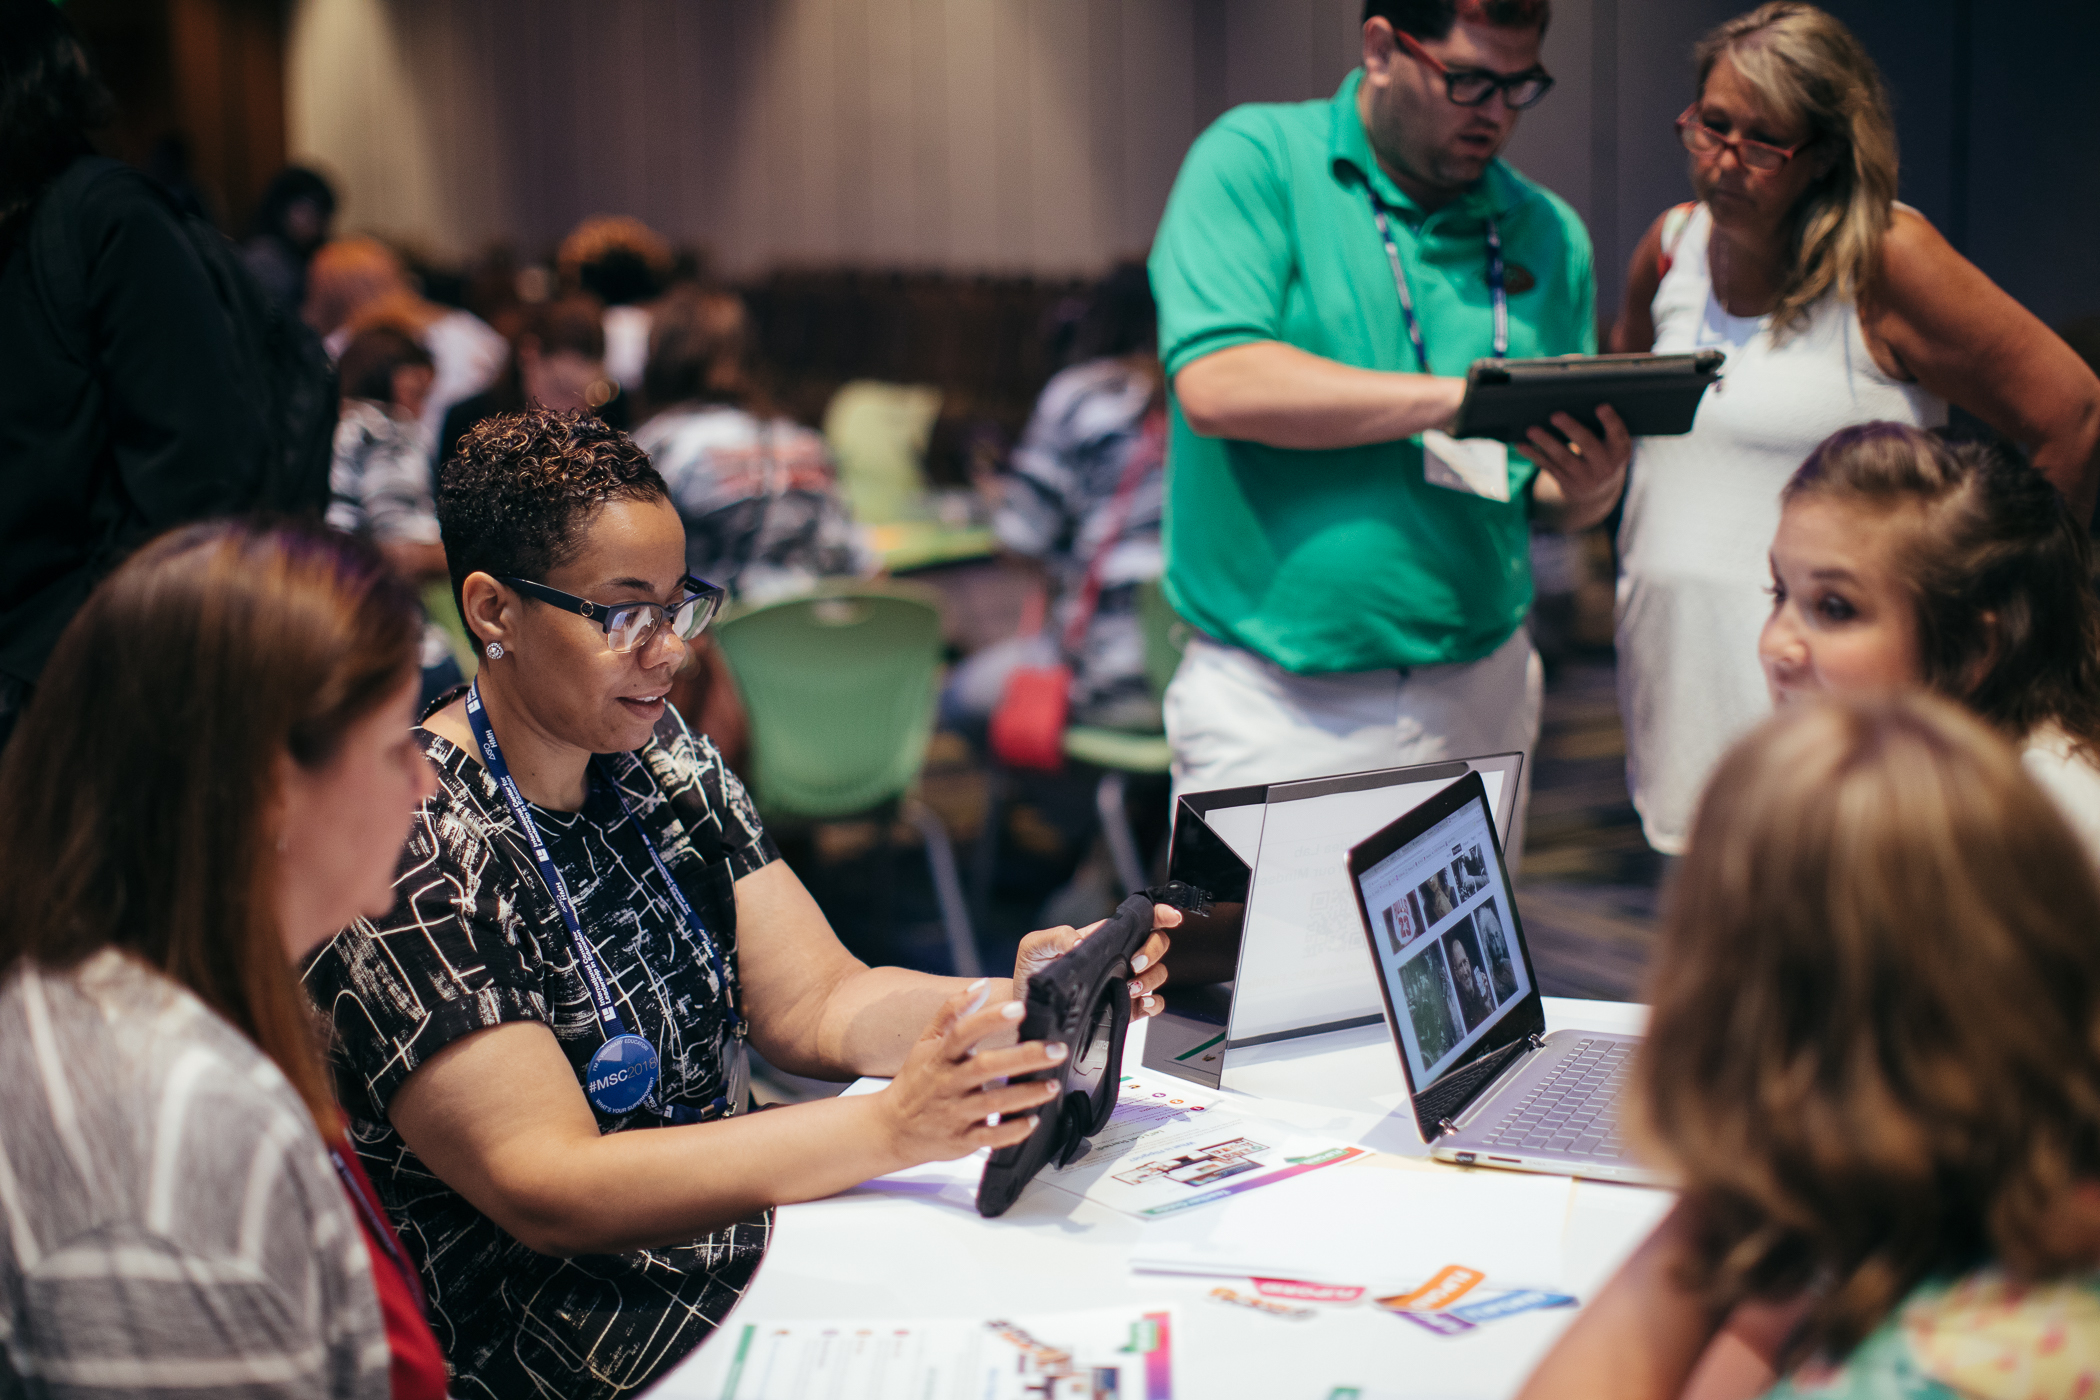 live event commercial photography brand storytelling for education florida conference photographer ©2018abigailbobophotography-49.jpg